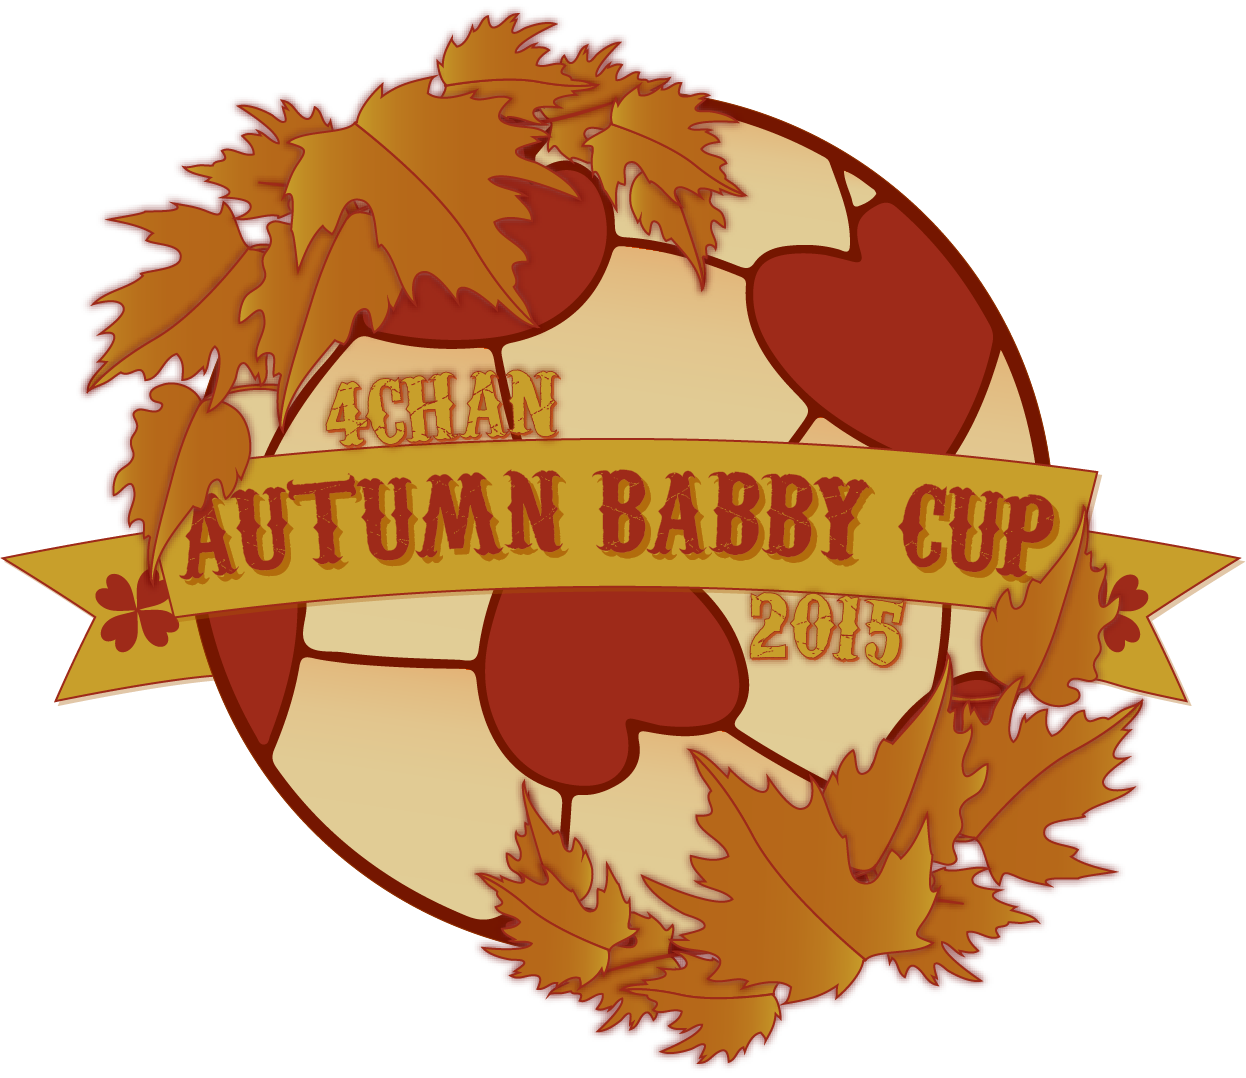 2015 4chan Autumn Babby Cup